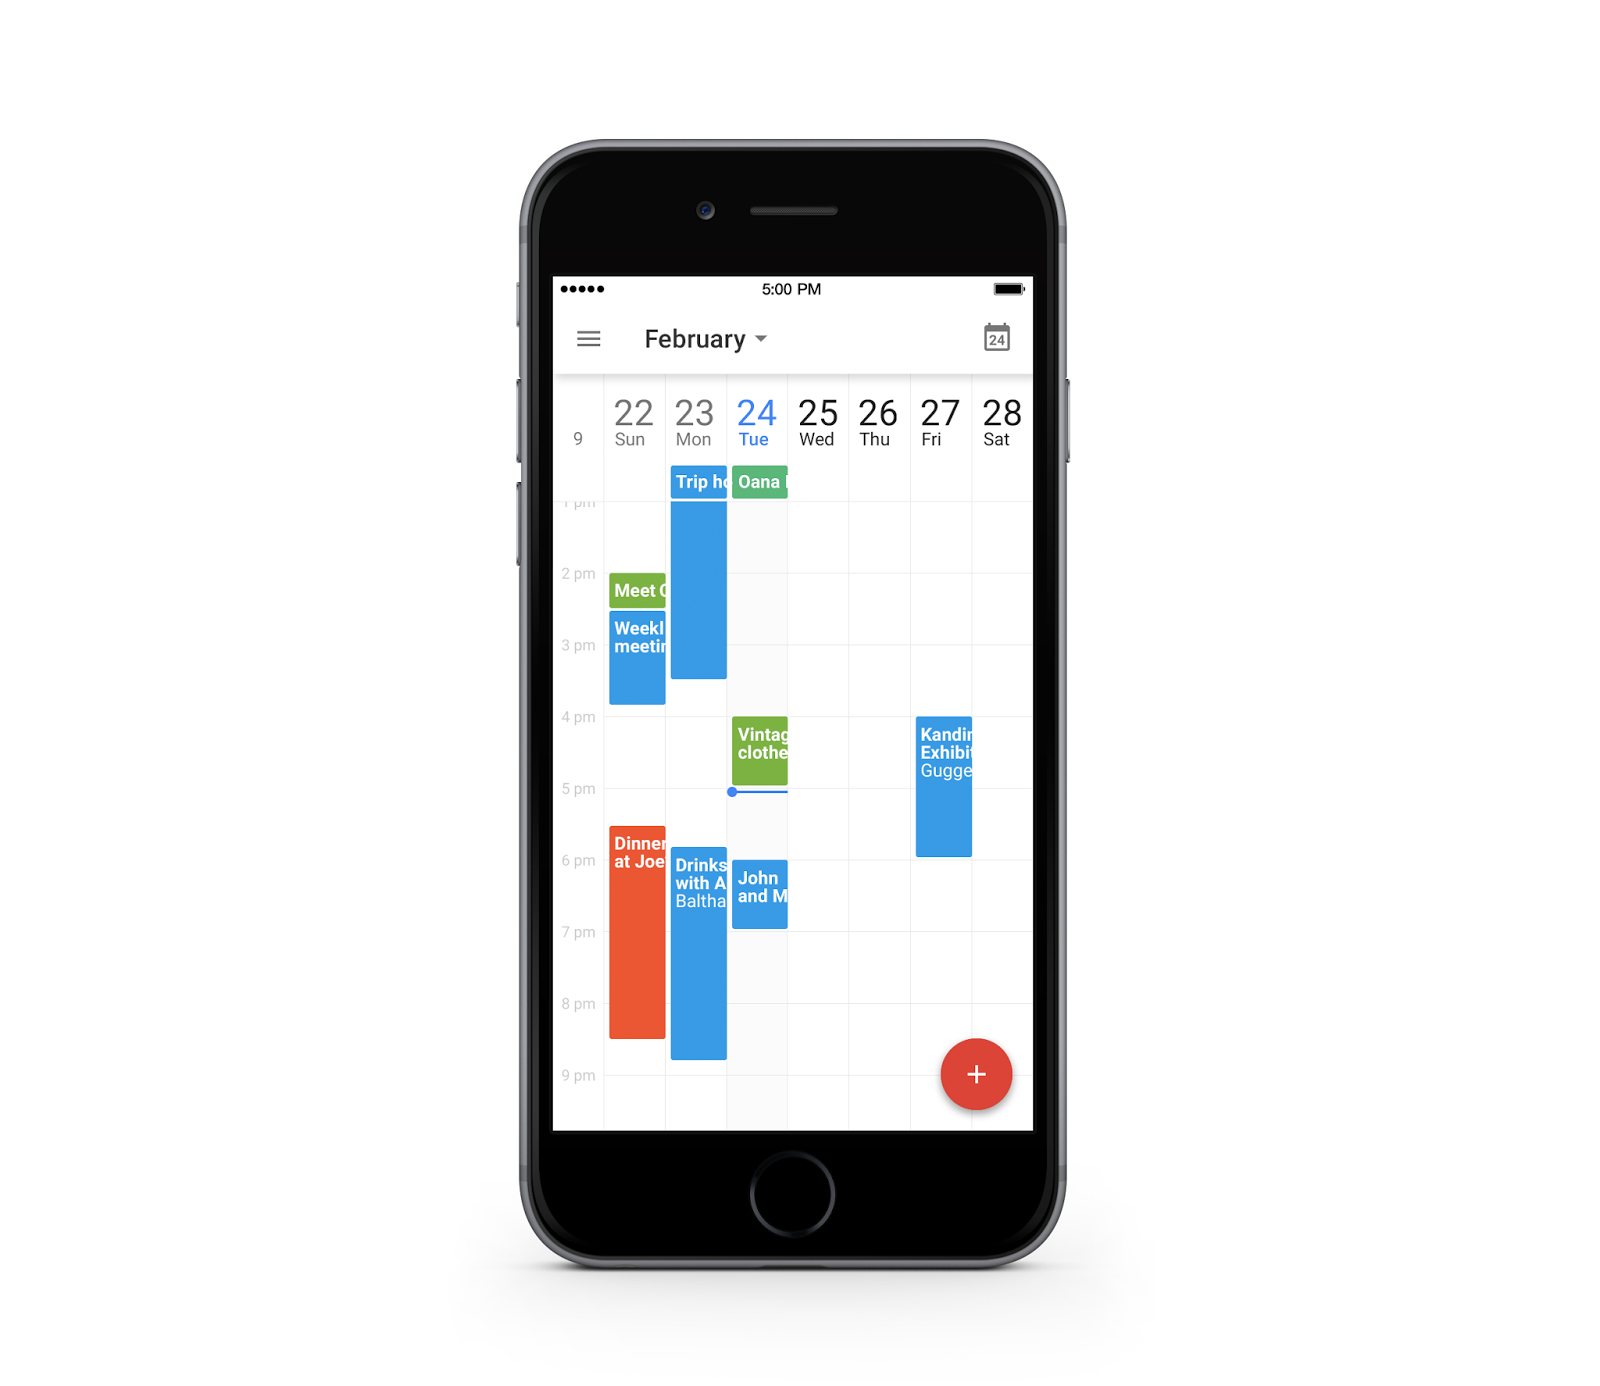 Google Calendar For Iphone: More Ways To Stay On Top Of Your